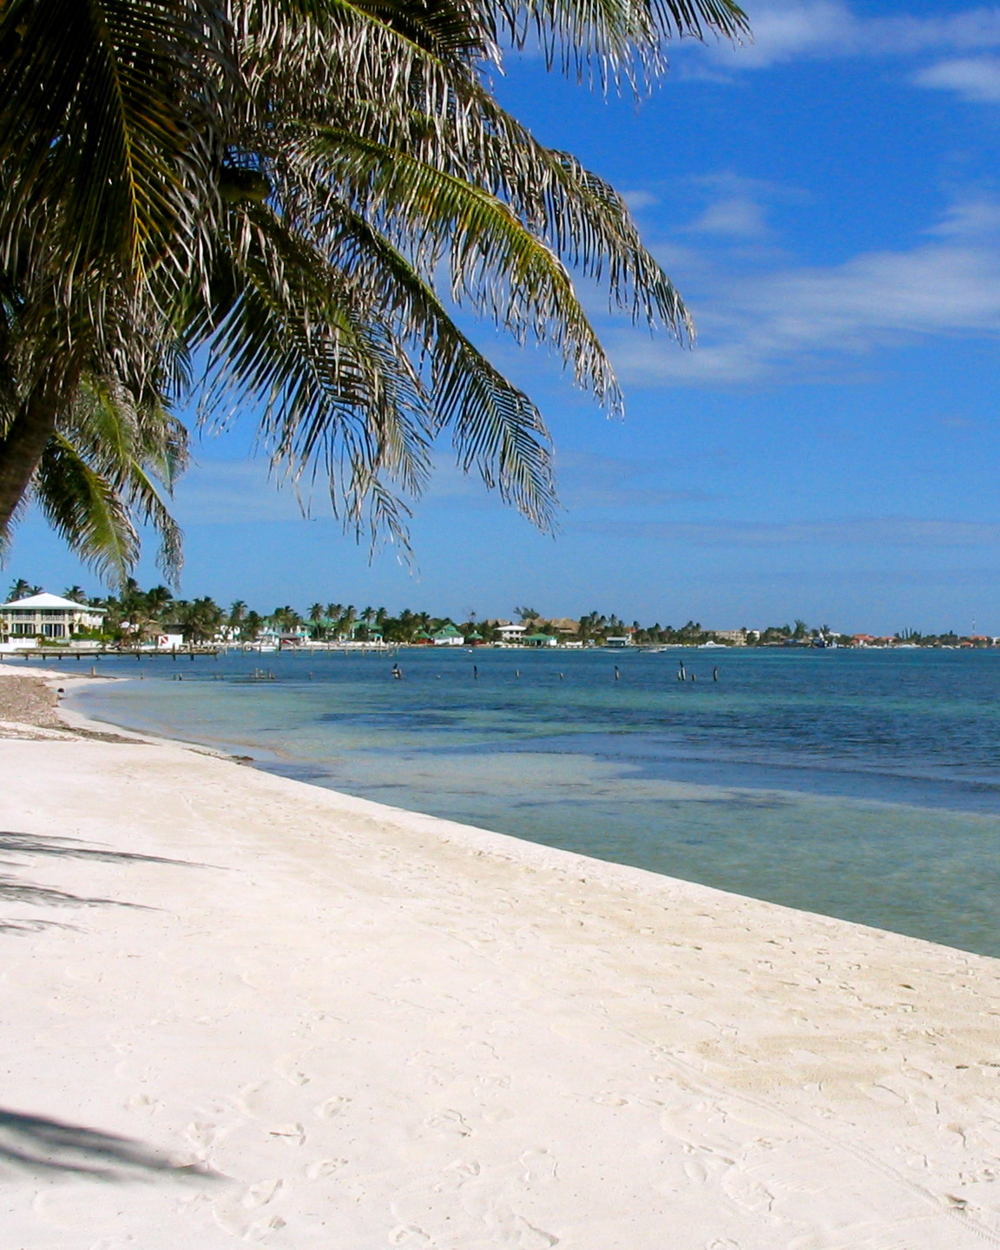 Inviting Island Resorts and lively beach bars dot the coast line extending north and south from San Pedro Town on Ambergris Caye